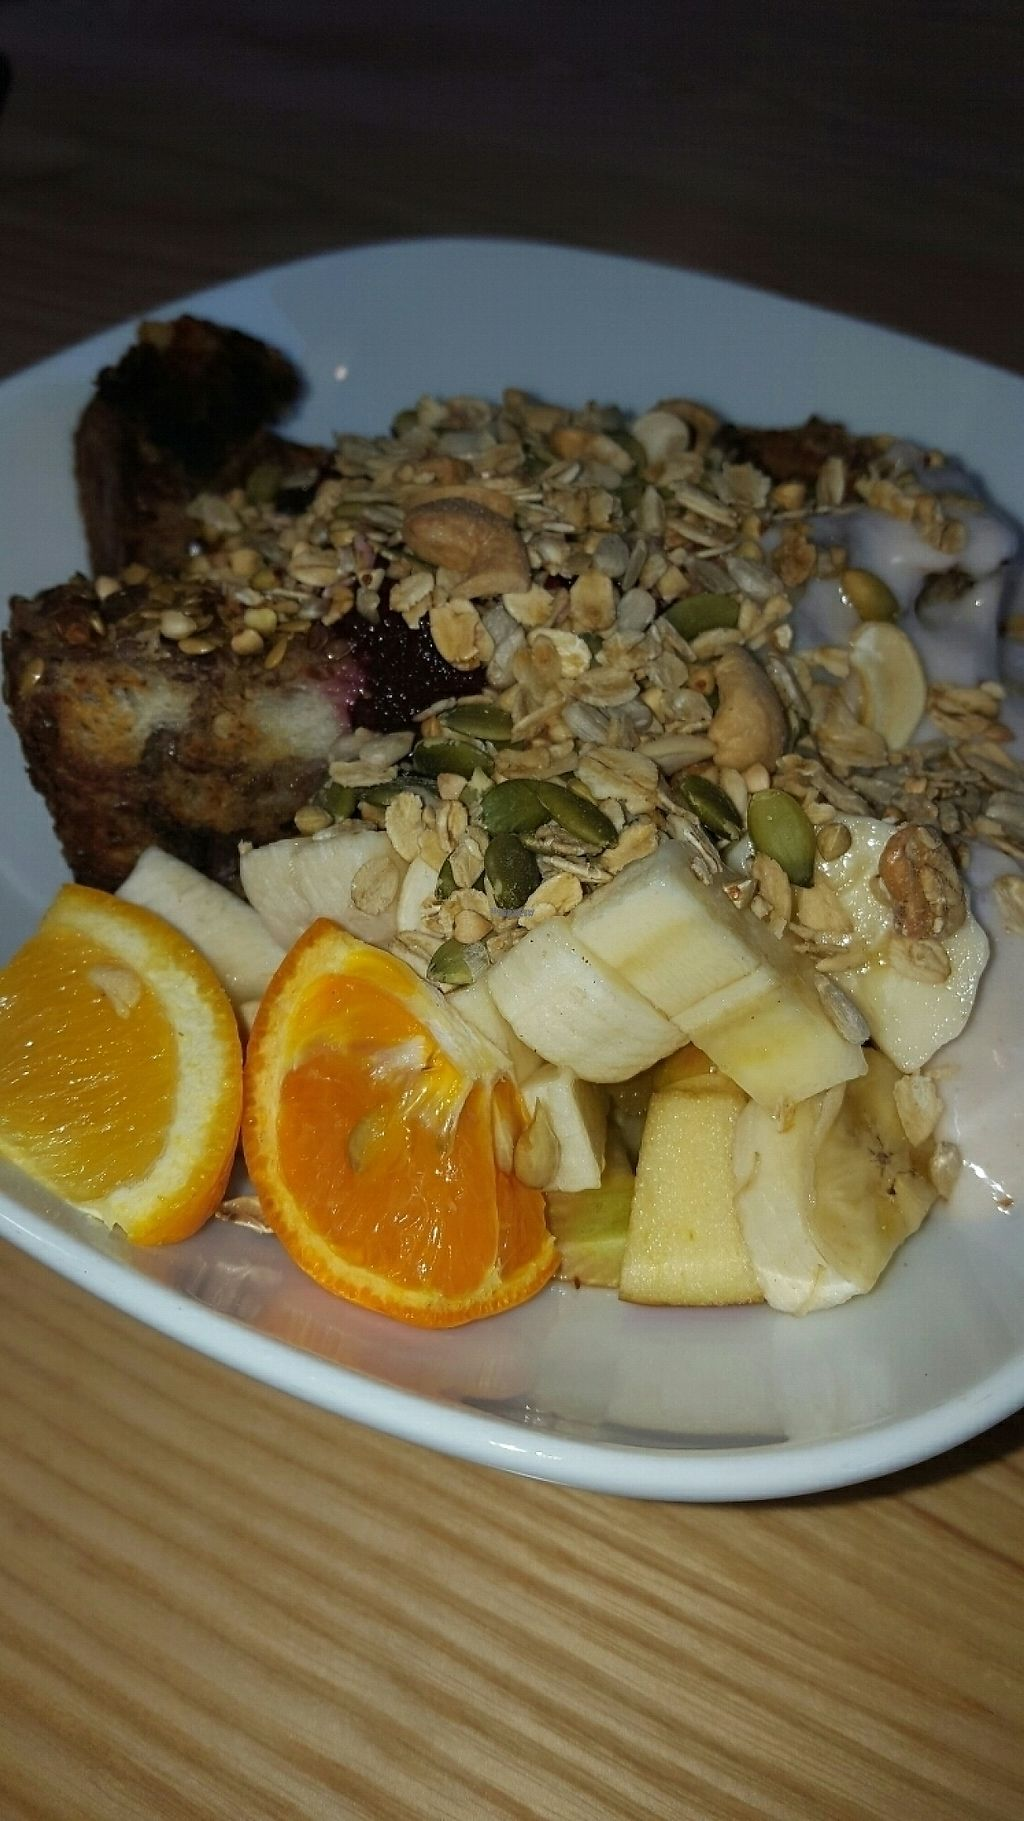 """Photo of The Uprooted Kitchen  by <a href=""""/members/profile/missmaryxjane"""">missmaryxjane</a> <br/>sourdough french toast  <br/> April 12, 2017  - <a href='/contact/abuse/image/31151/247351'>Report</a>"""